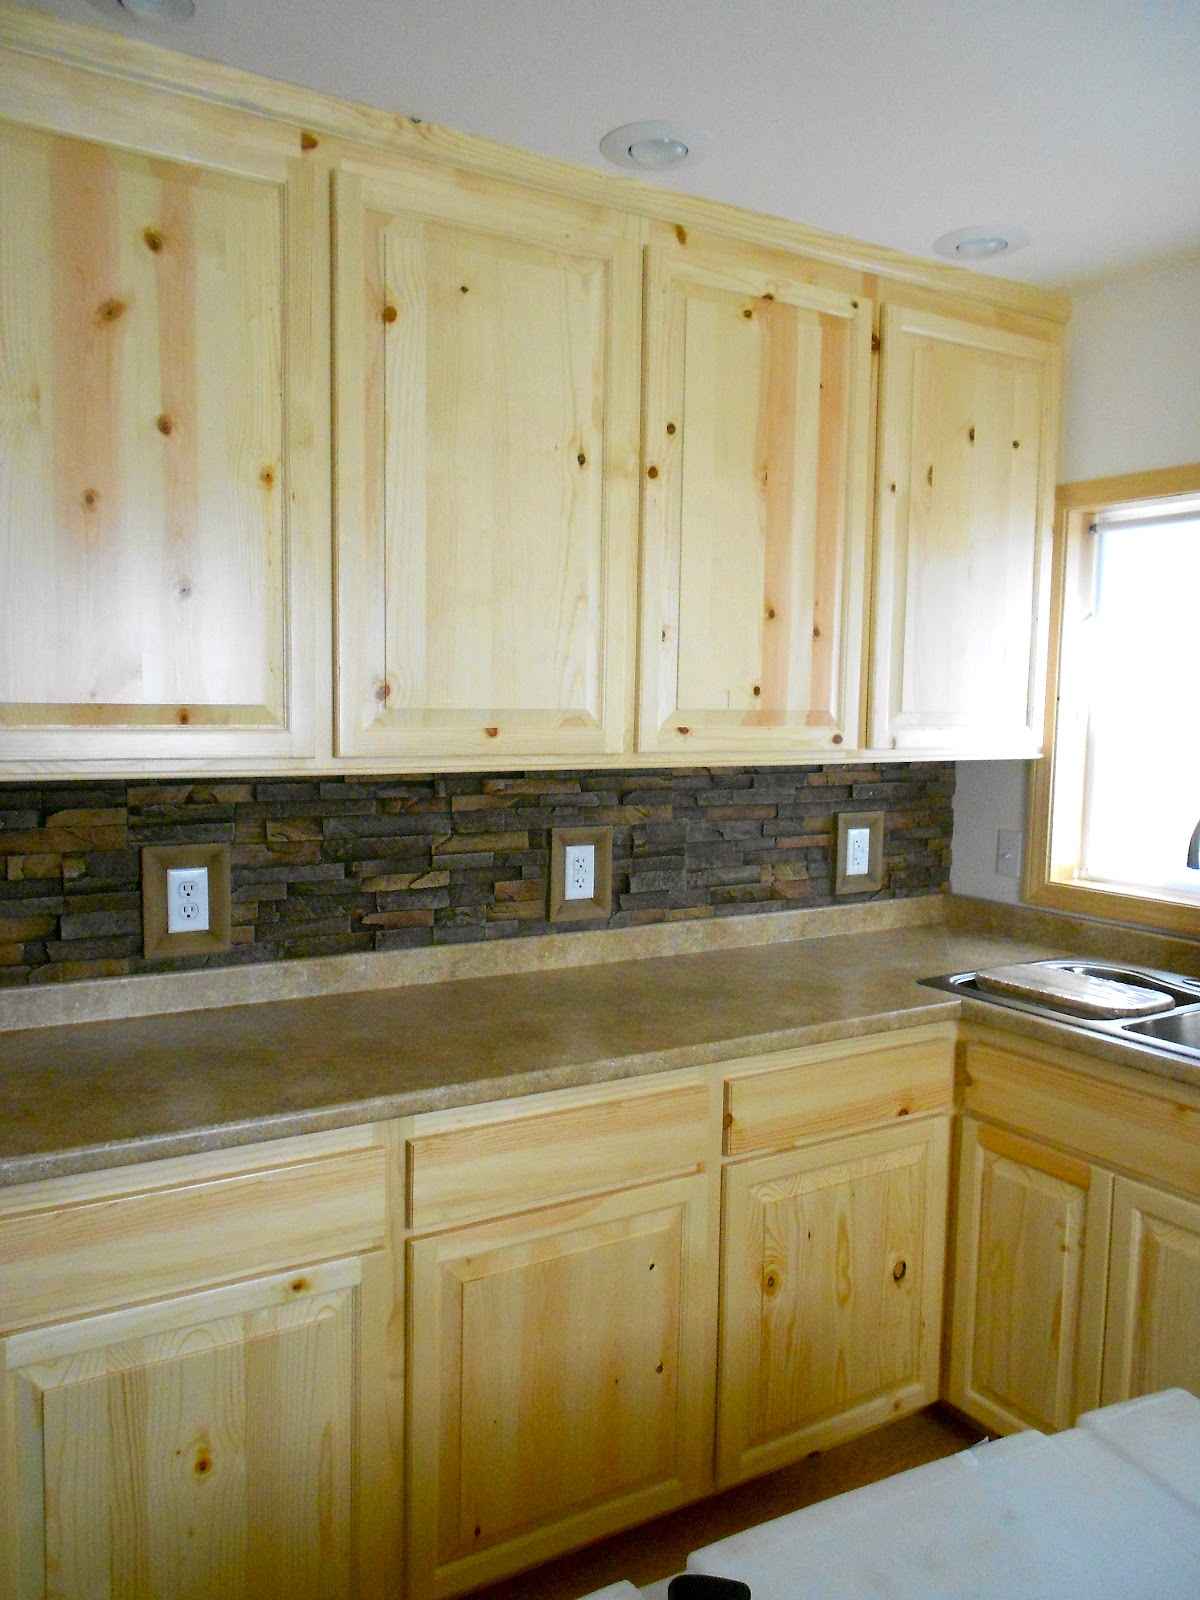 Architectural Wood Designs: Knotty Pine Cabinets